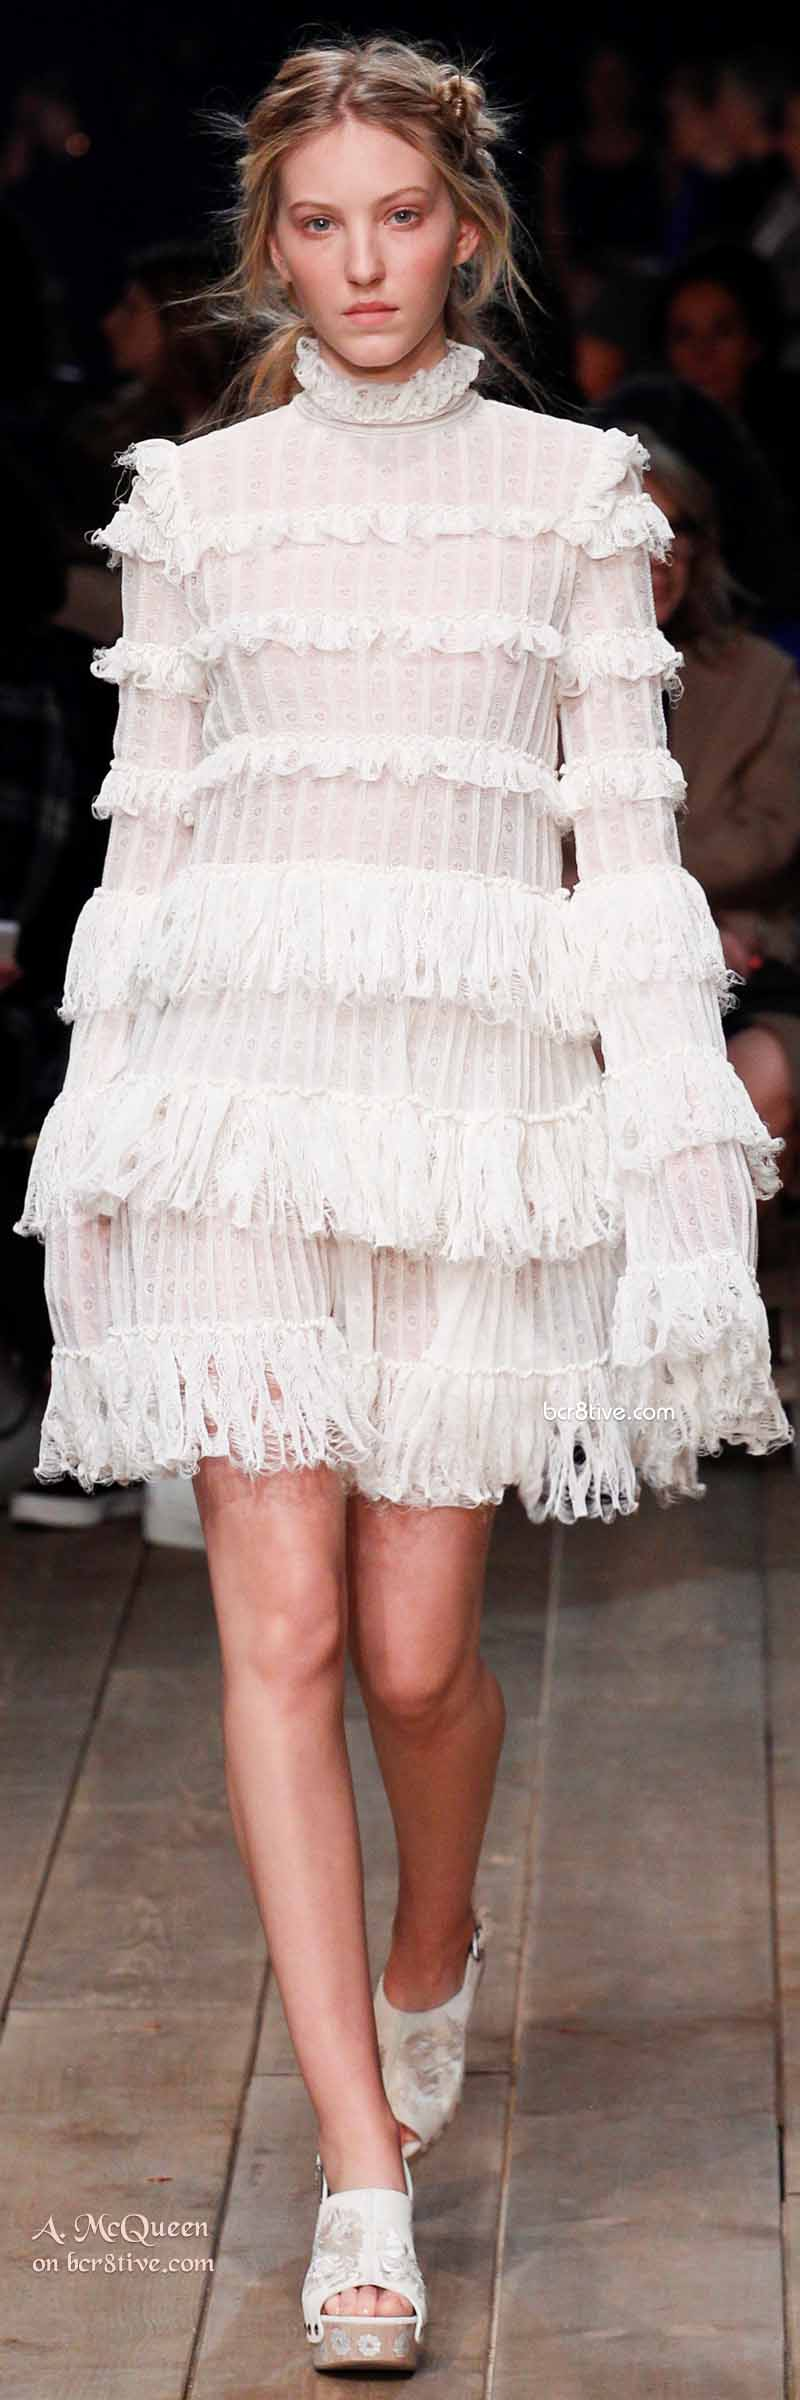 Hoboish Knit Ruffles - The Best of Alexander McQueen 2016